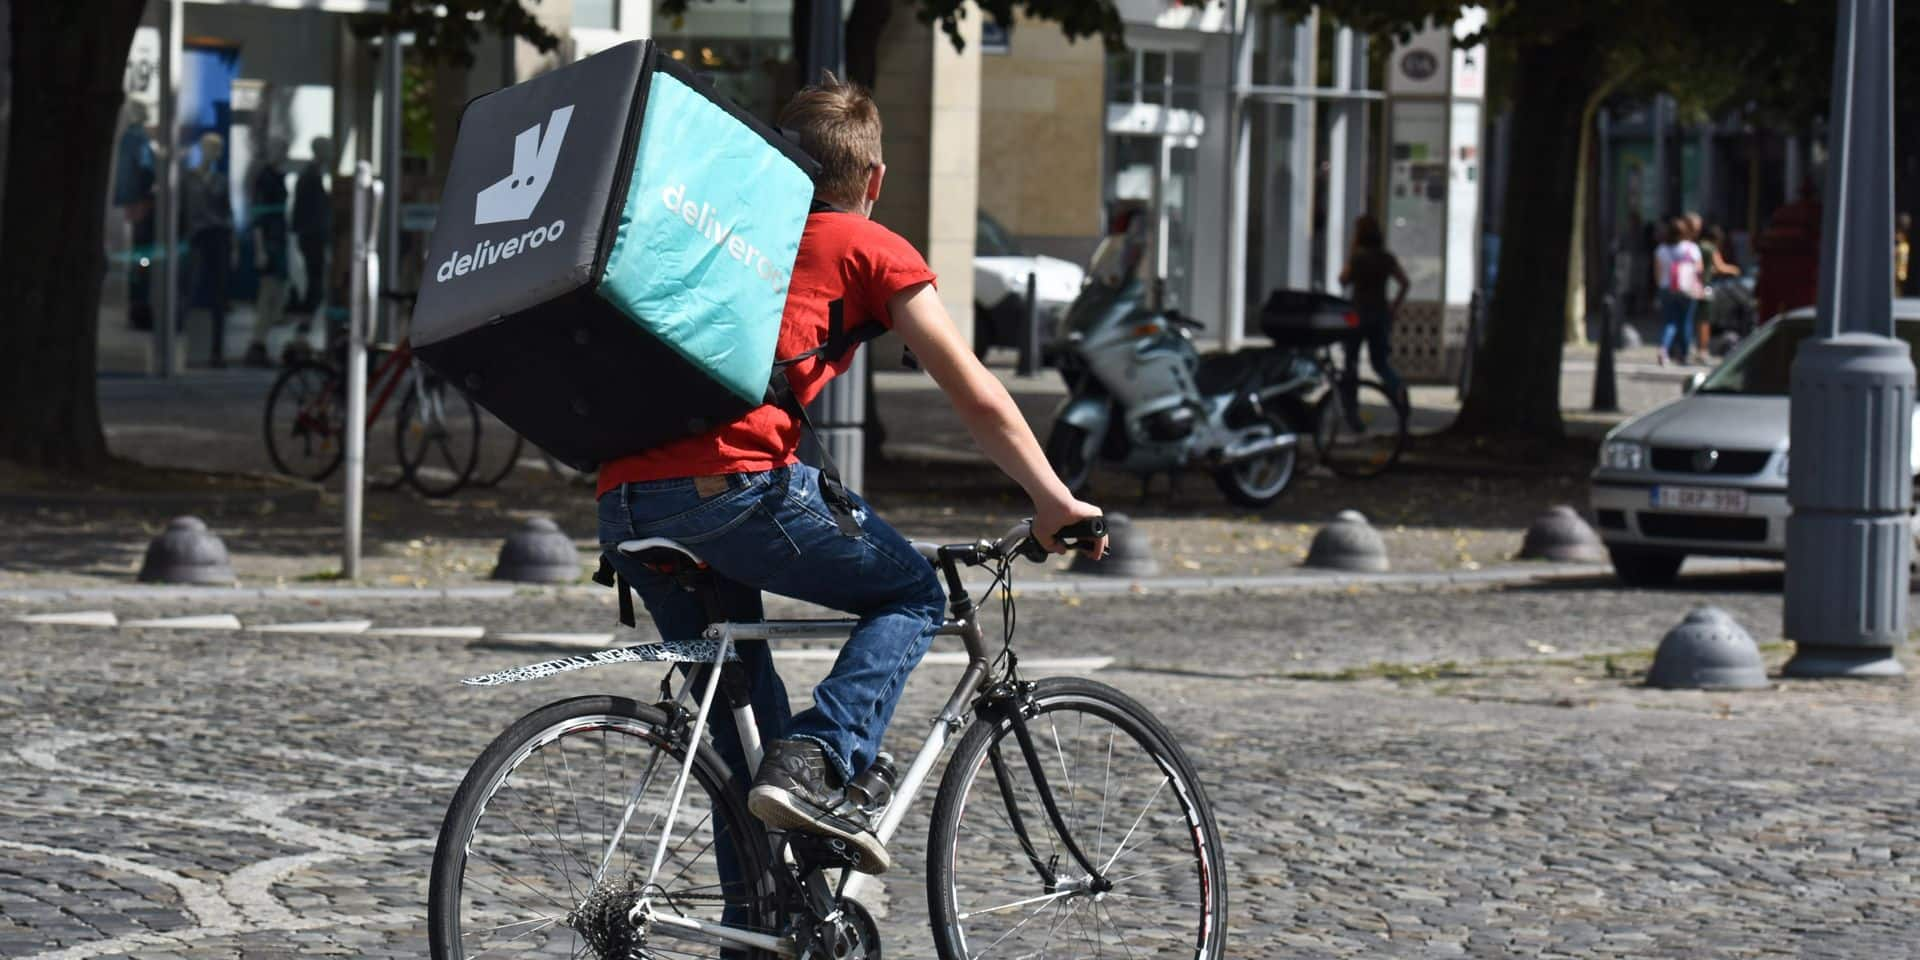 Liège - Pizza - Deliveroo